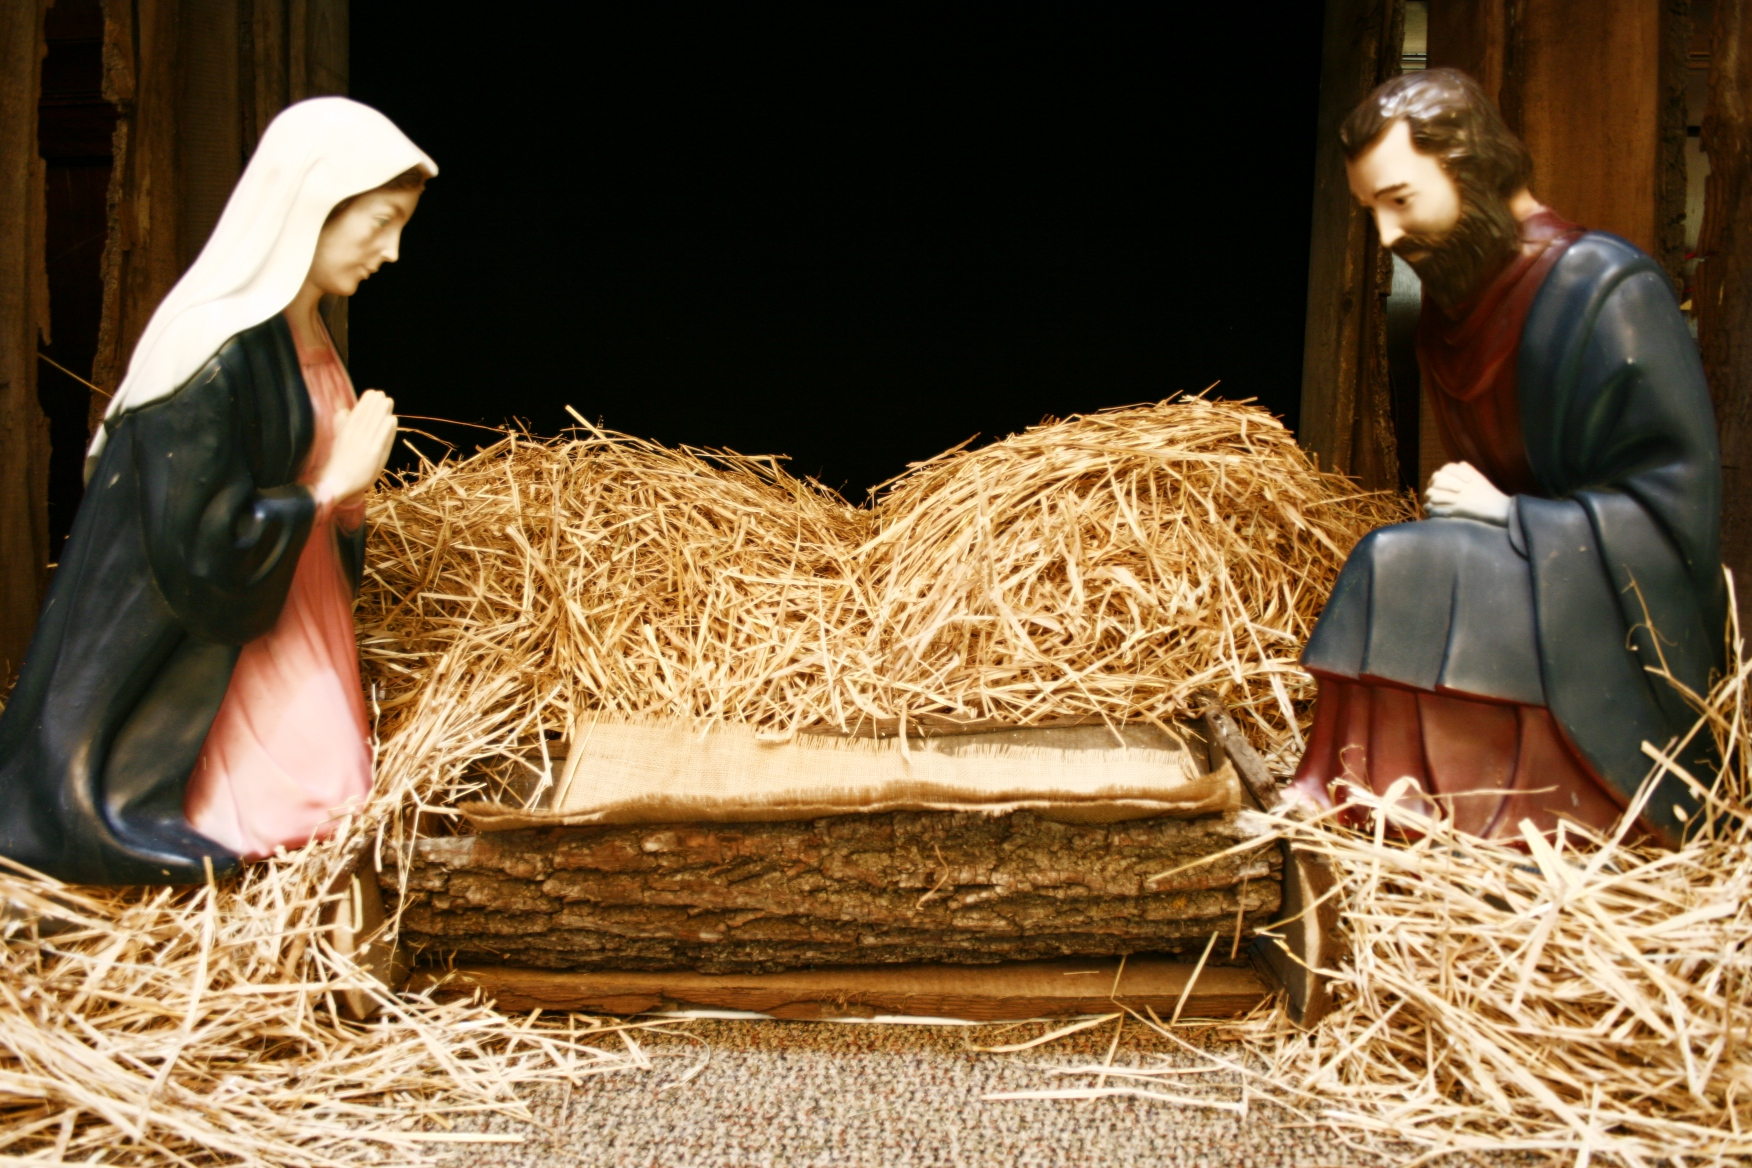 Editing tools were applied to this photo of Mary and Joseph, lending a dreamy quality to the image.